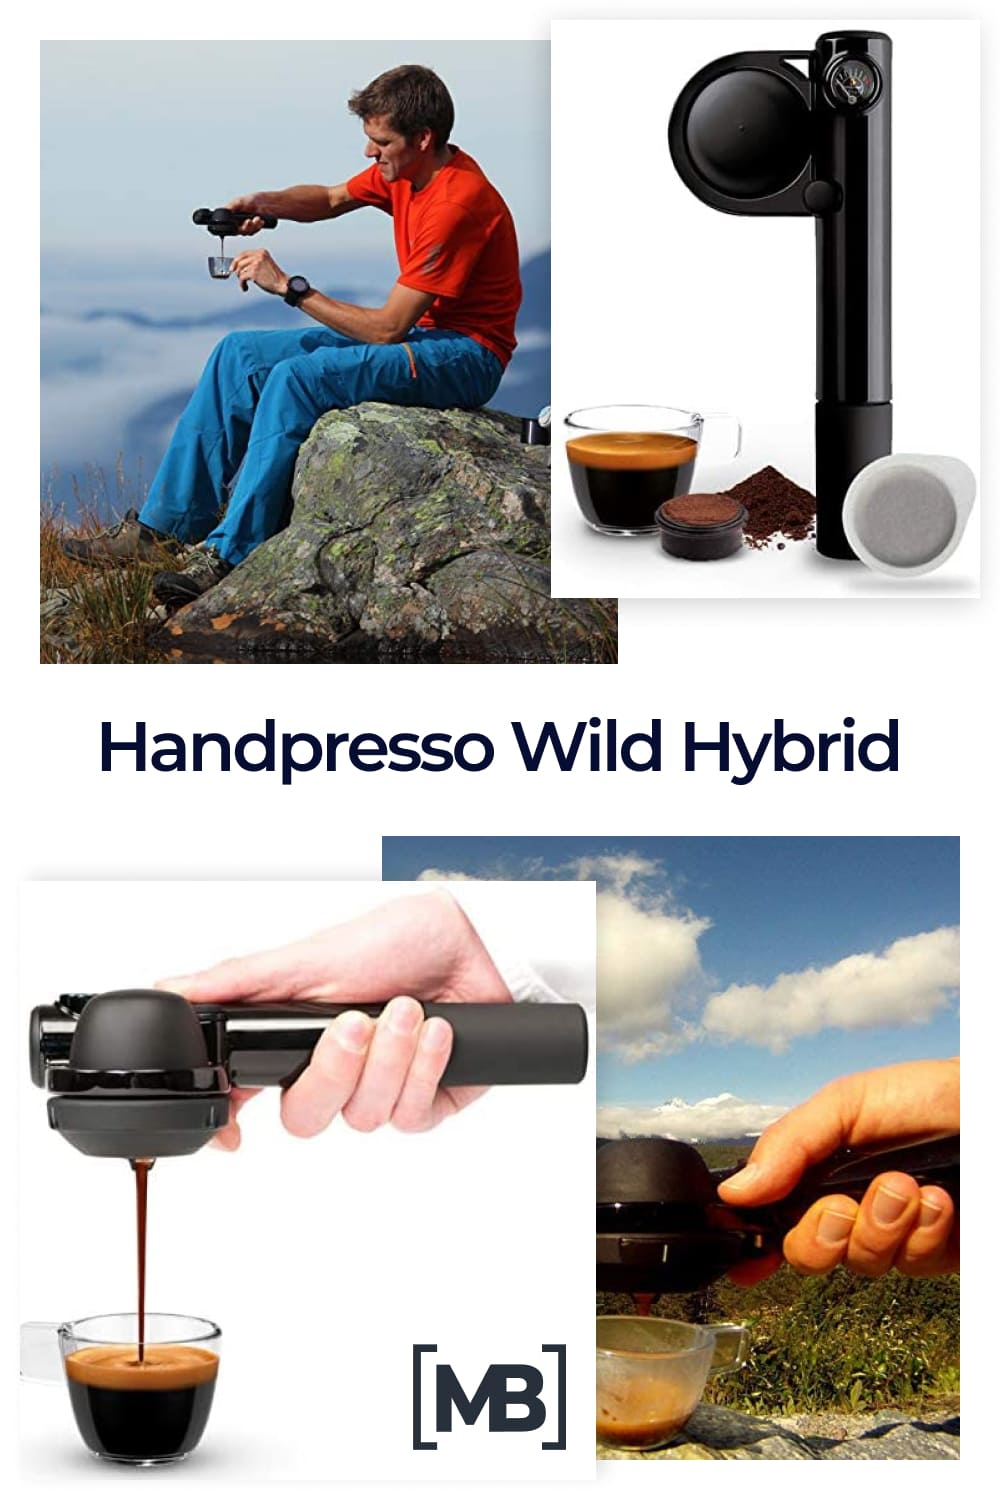 With the Handpresso Wild Hybrid, you may vary the coffee experience as inspiration and weather dictates.